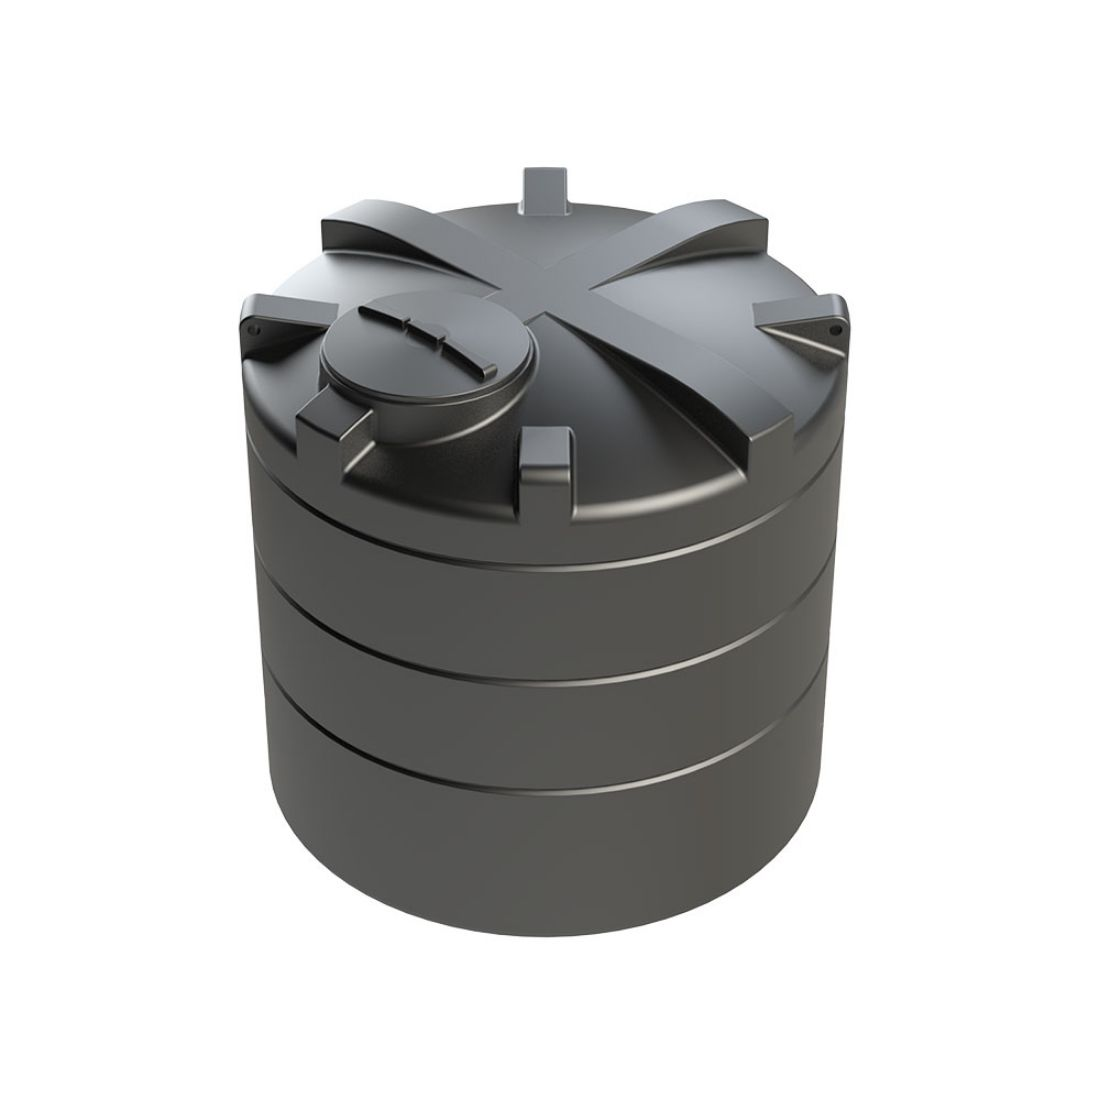 Enduramaxx 4,000 Litre Vertical Non-Potable Water Storage Tank